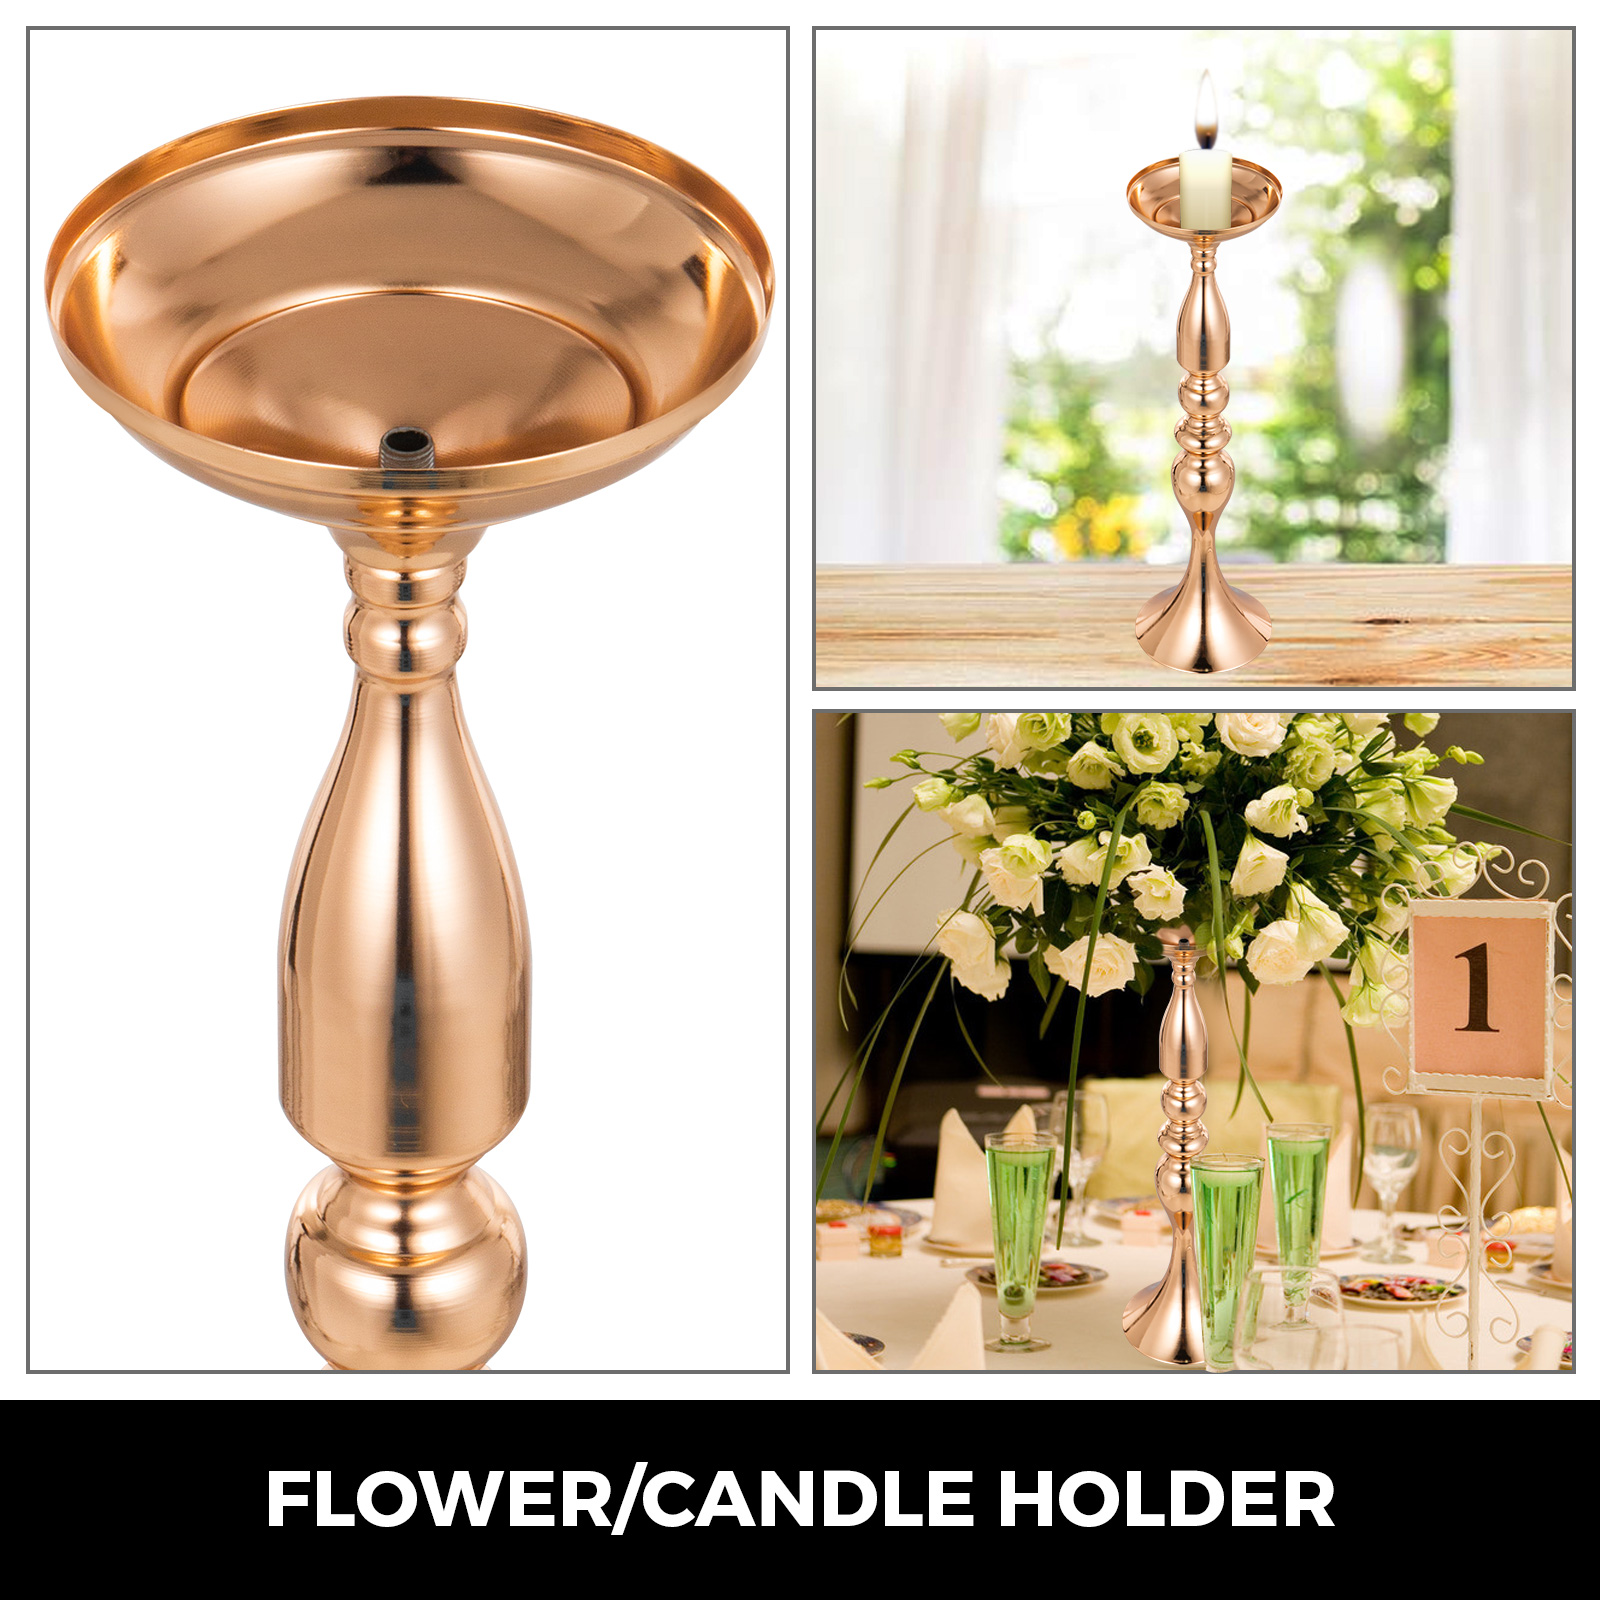 Flower-Rack-for-Wedding-Metal-Candle-Stand-4-11pcs-Centerpiece-Flower-Vase thumbnail 111